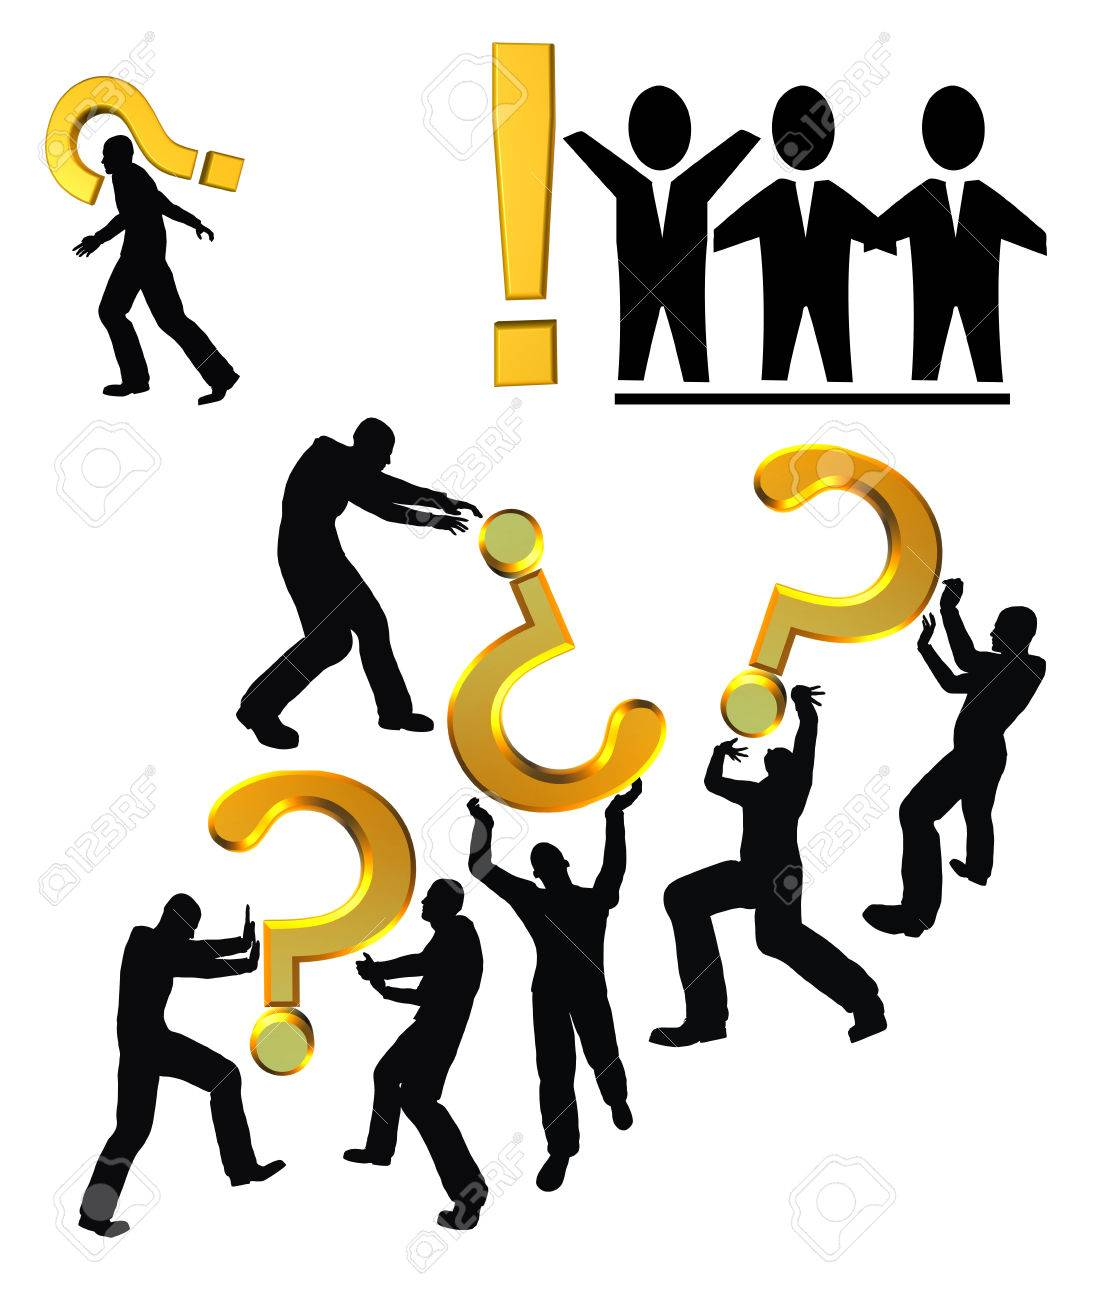 Questions and Answers Communication conflict between workers